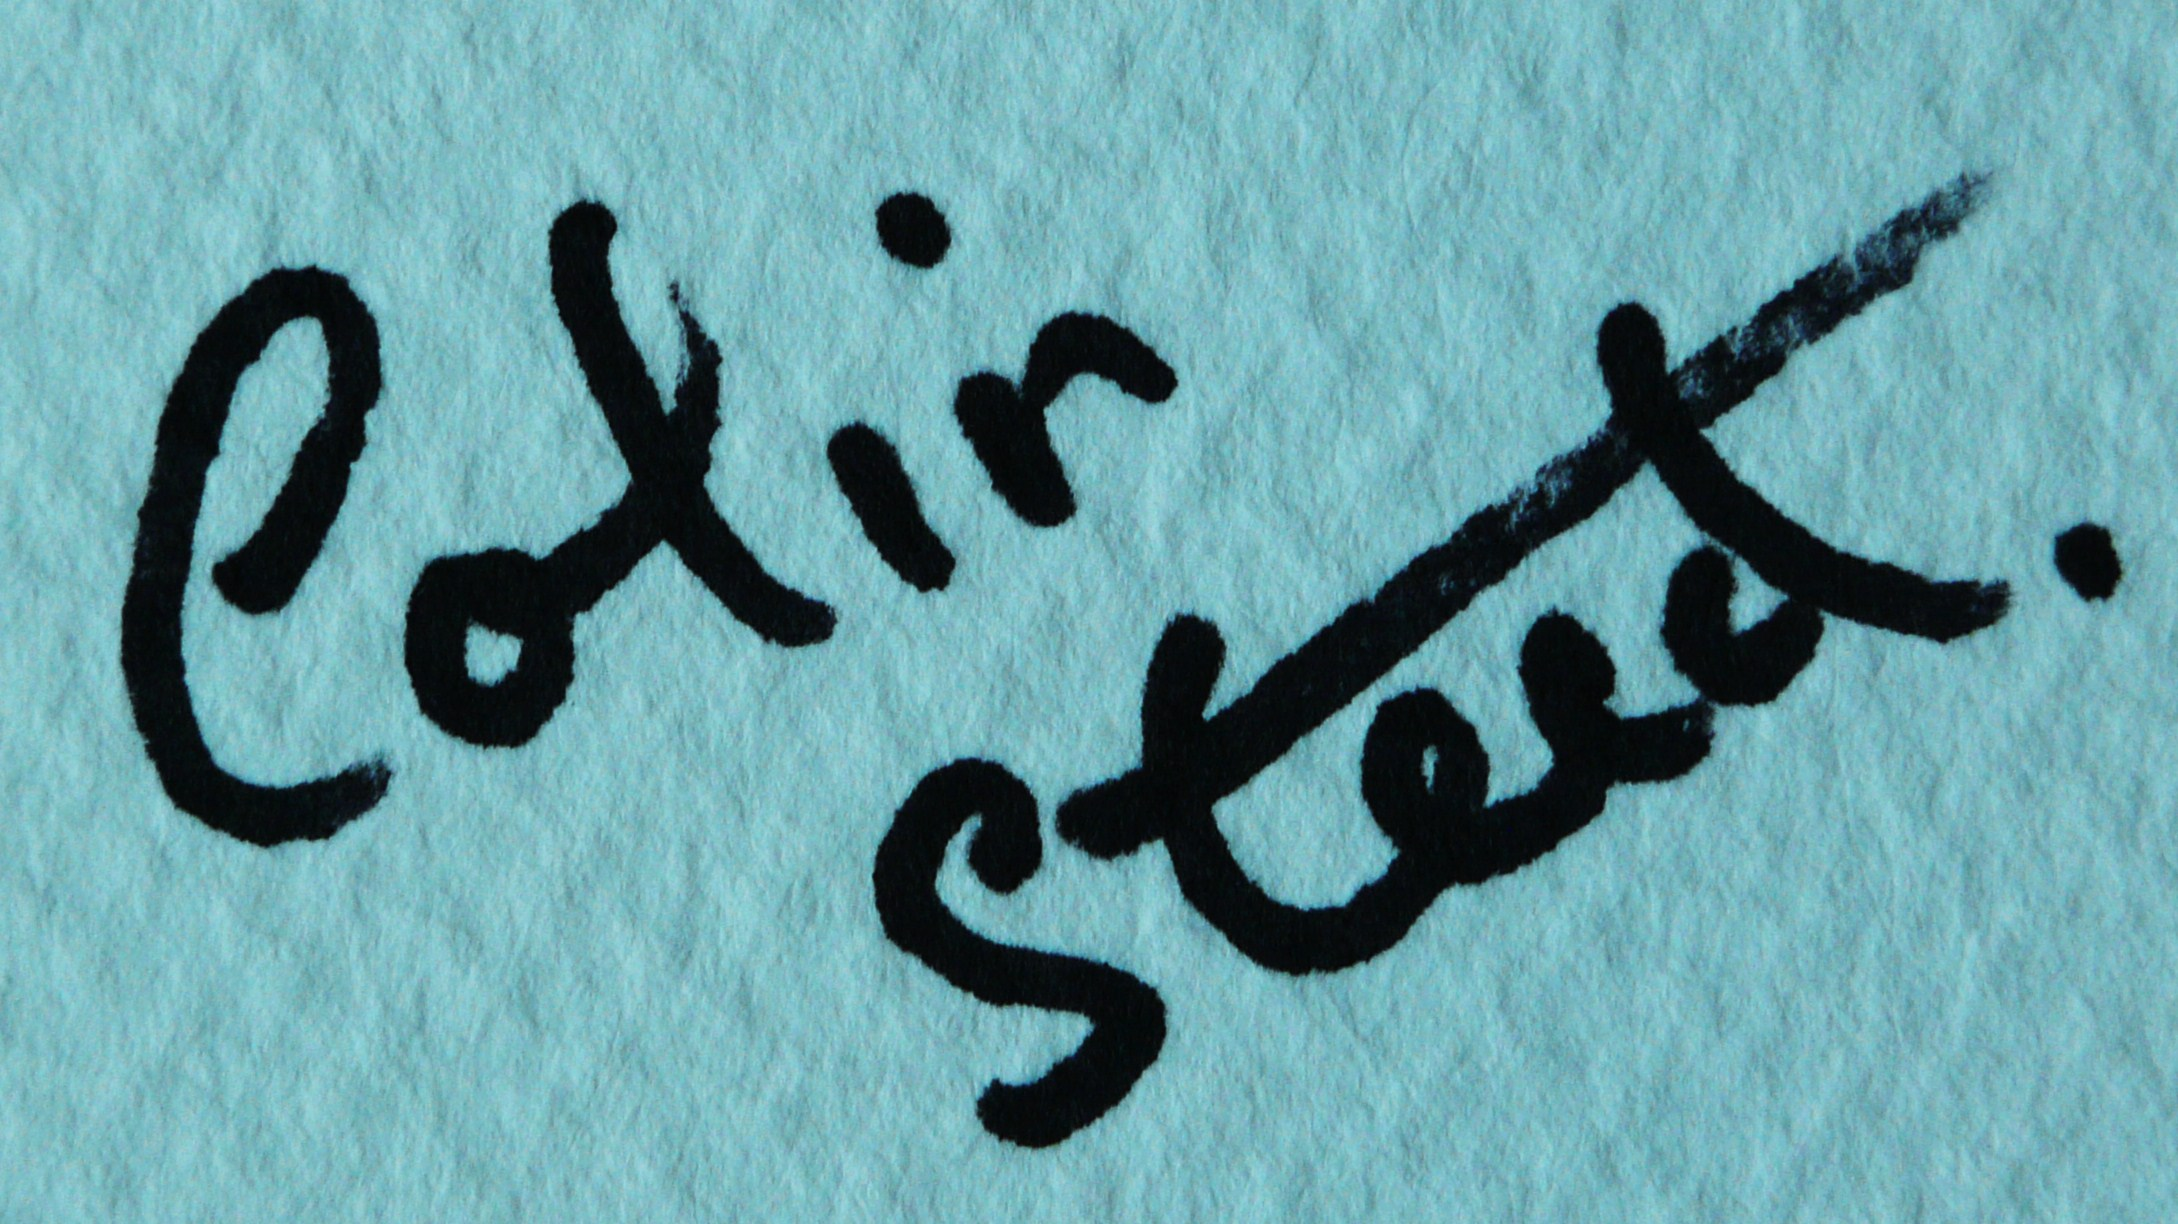 colin Steed's Signature